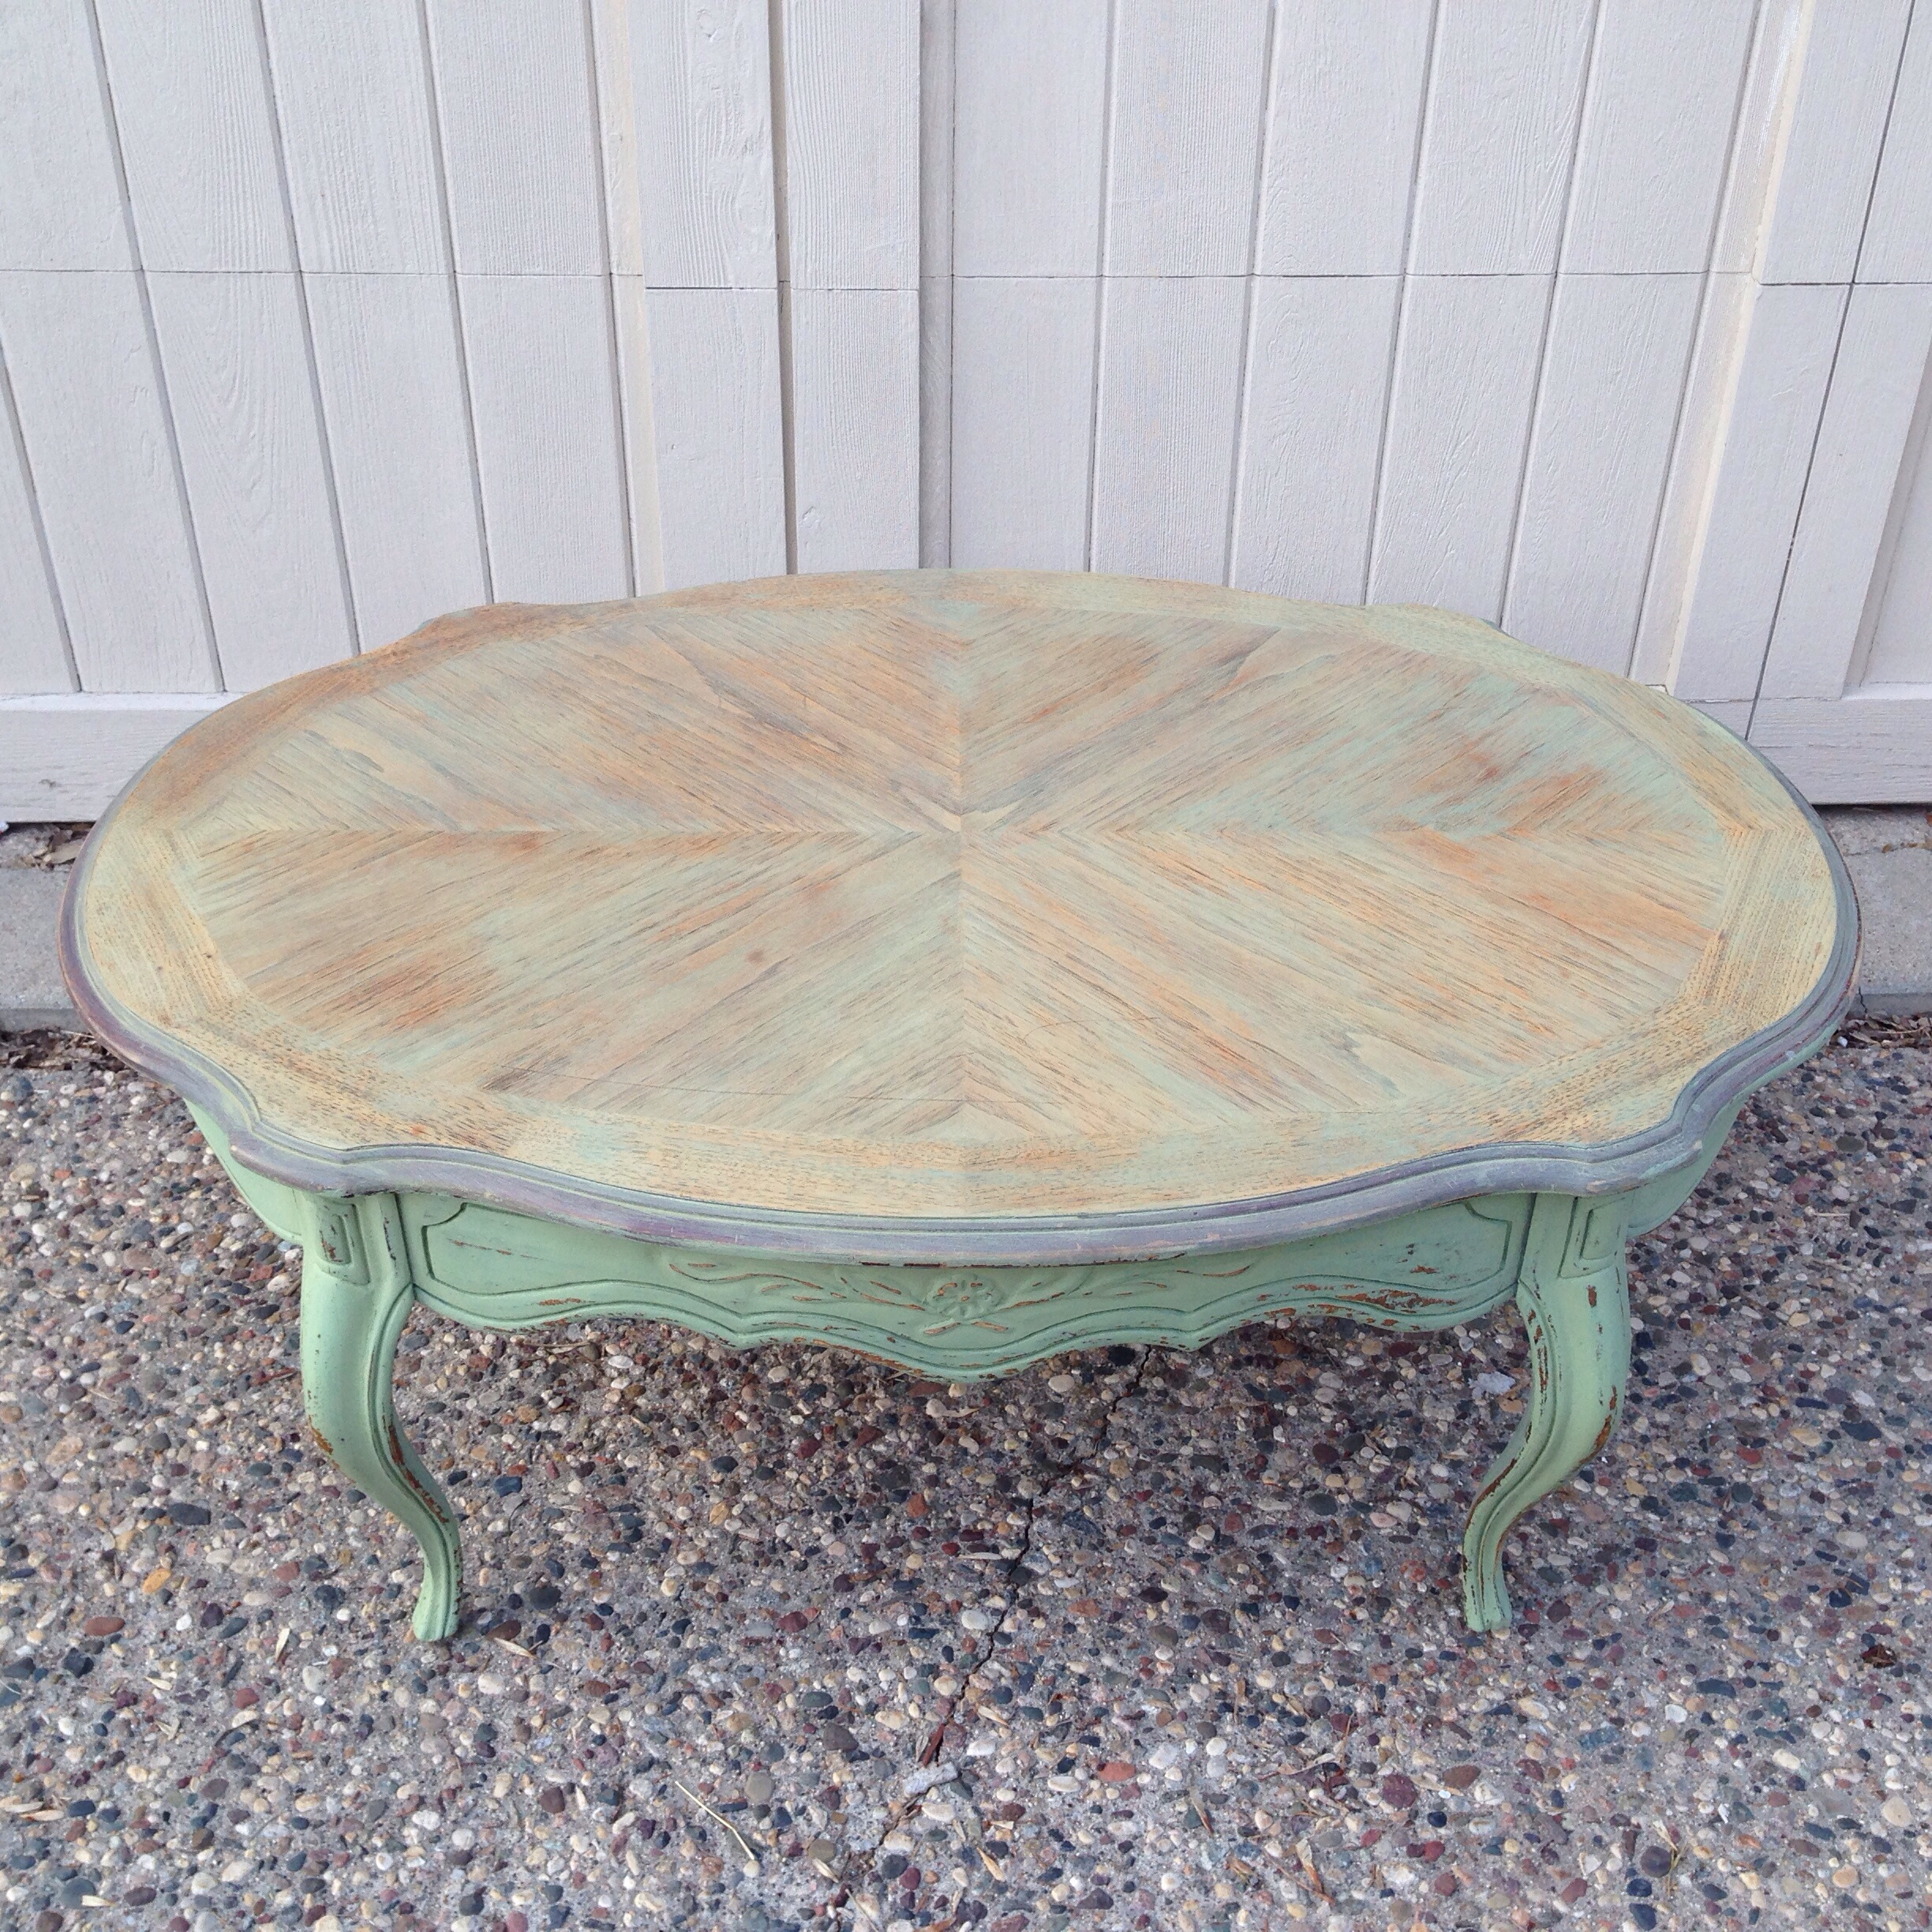 Luckett's Green Milk Paint Coffee Table | Carver Junk Company | Recycle. Repurpose. Relove.